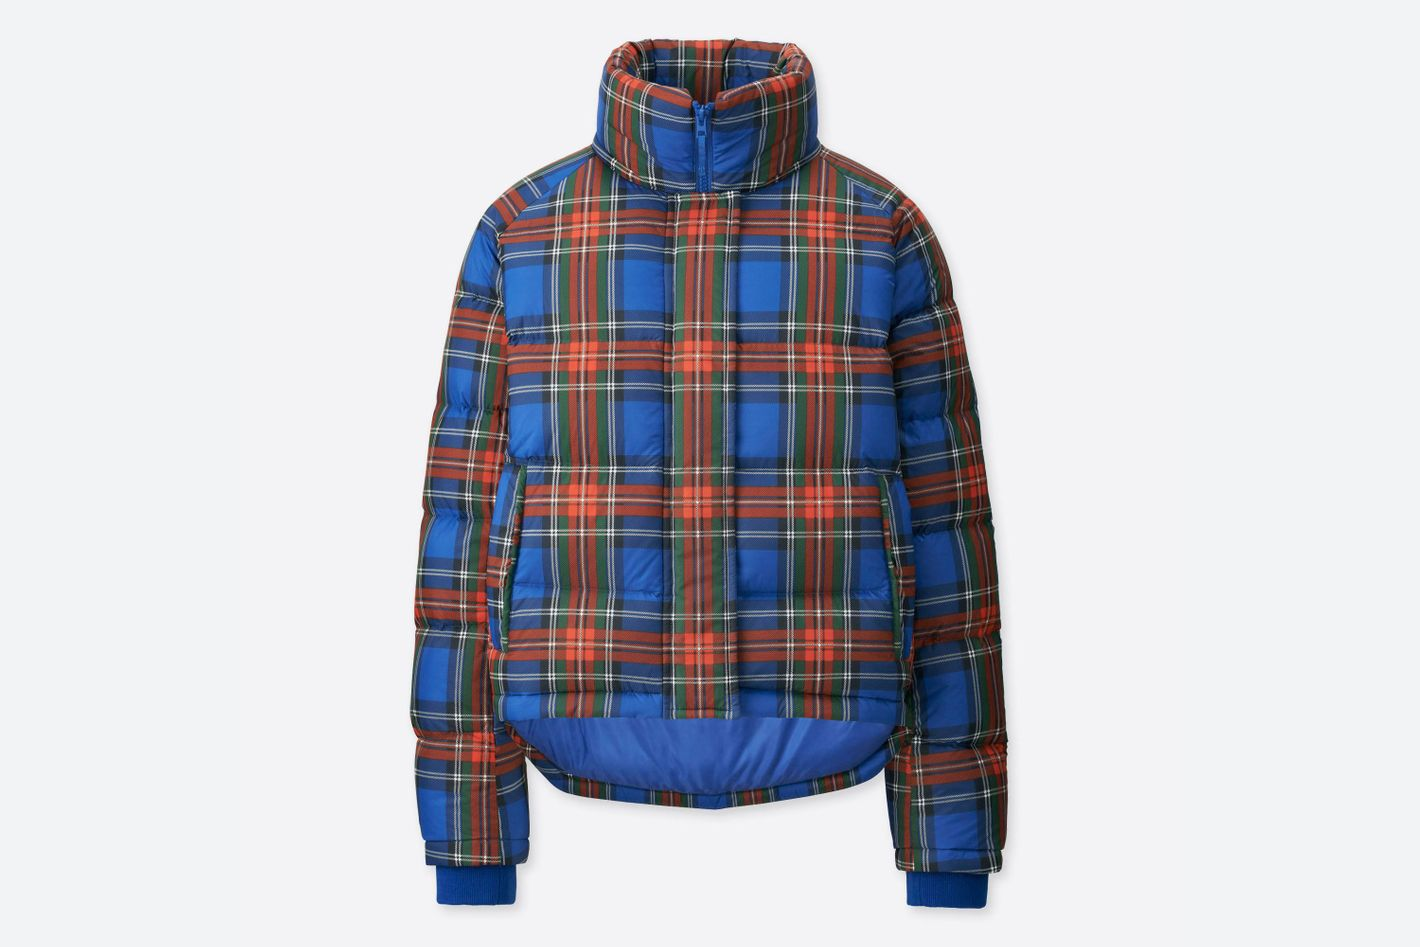 J.W. Anderson x Uniqlo Plaid Puffer Coat